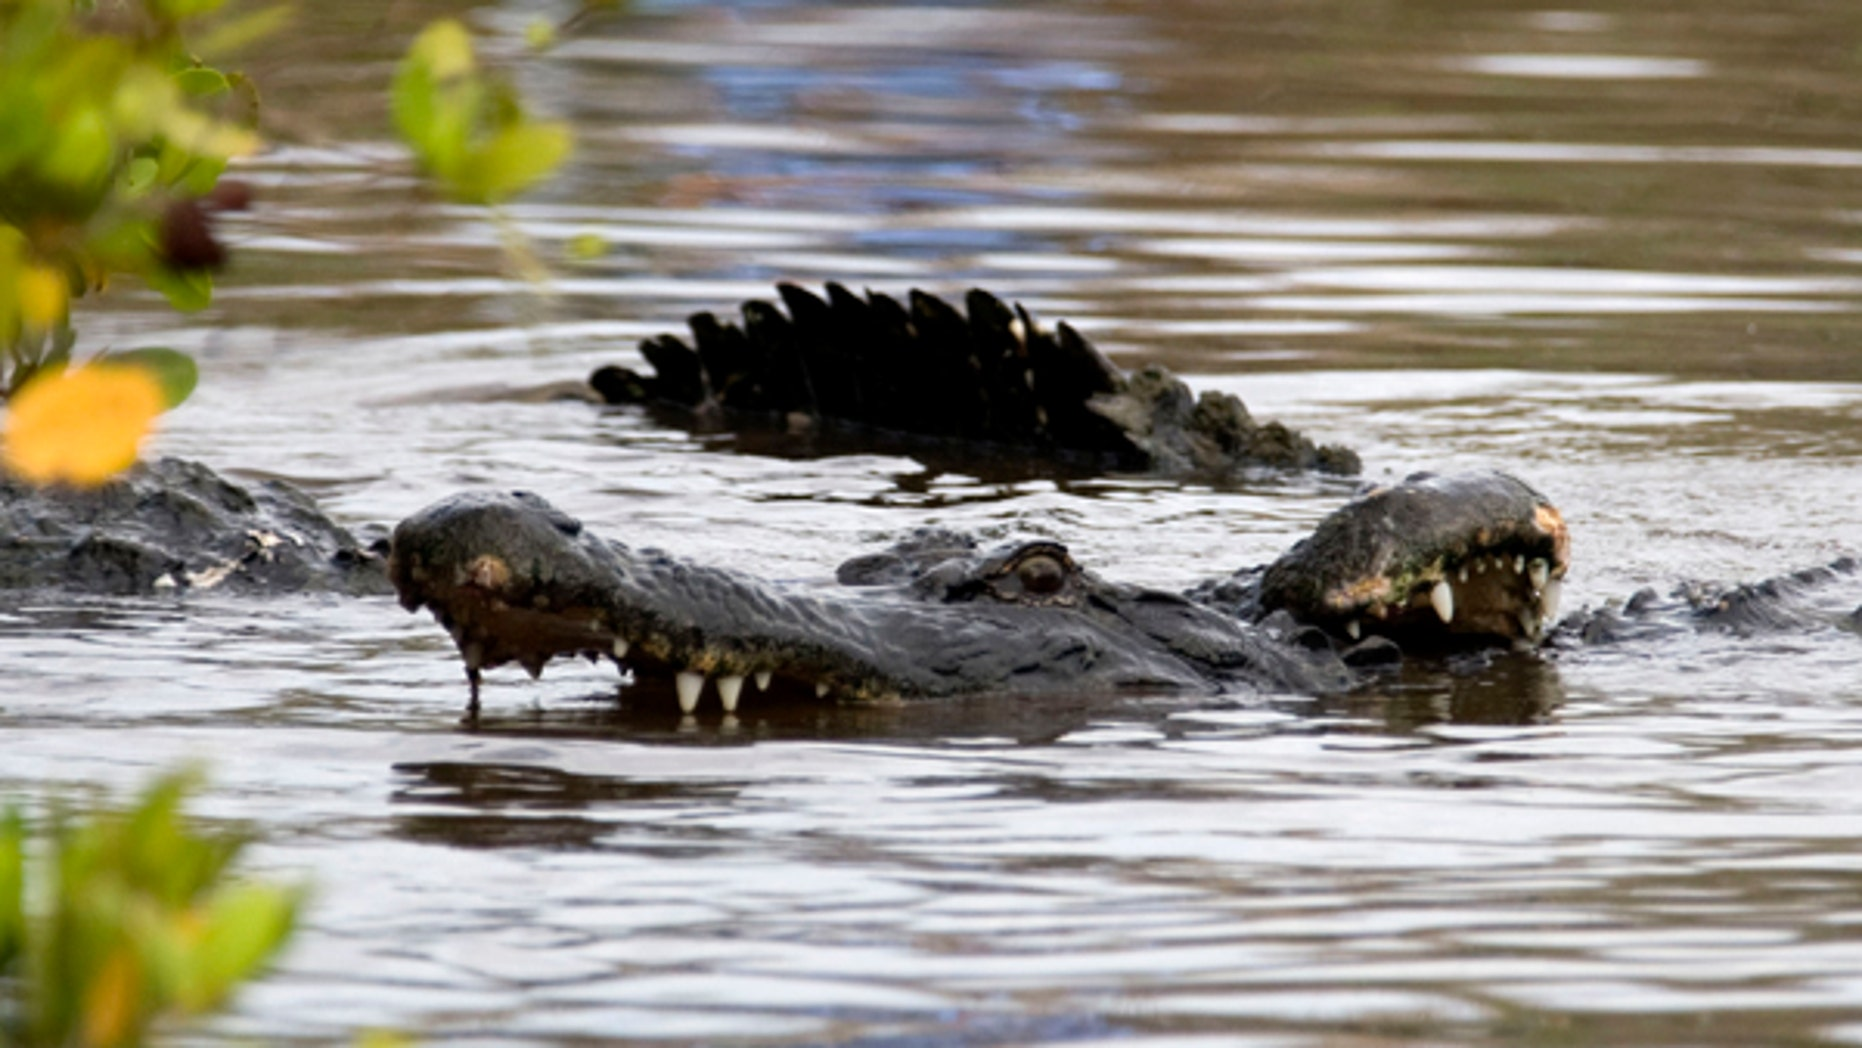 American alligators fight near launch pad 39A at Kennedy Space Center in Cape Canaveral, Florida June 7, 2007. REUTERS/Charles W. Luzier (UNITED STATES) - RTR1QK2L